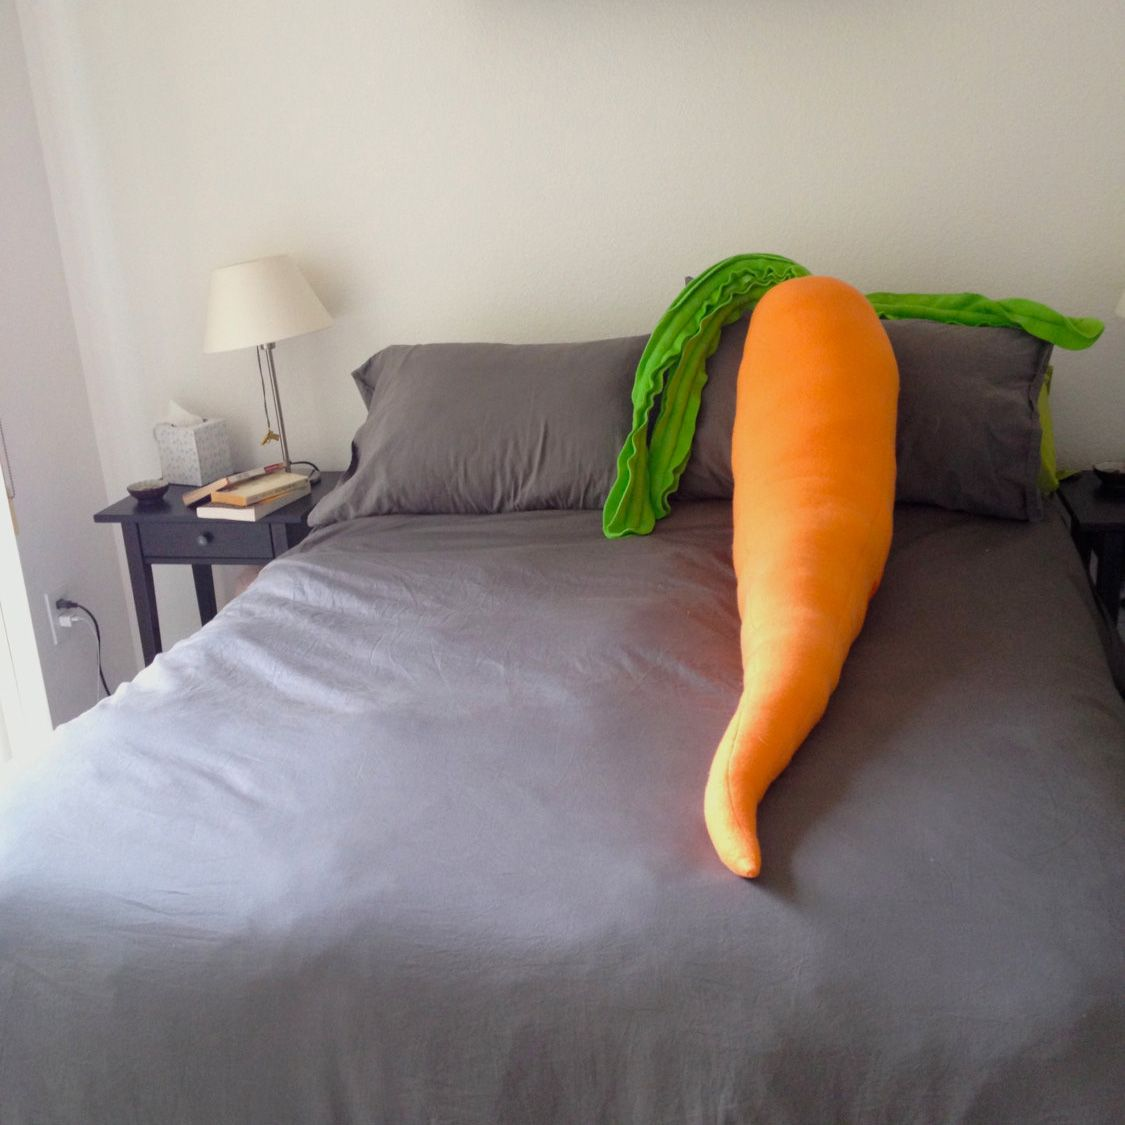 Giant Carrot Body Pillow | Carrots, Pillows and Bodies